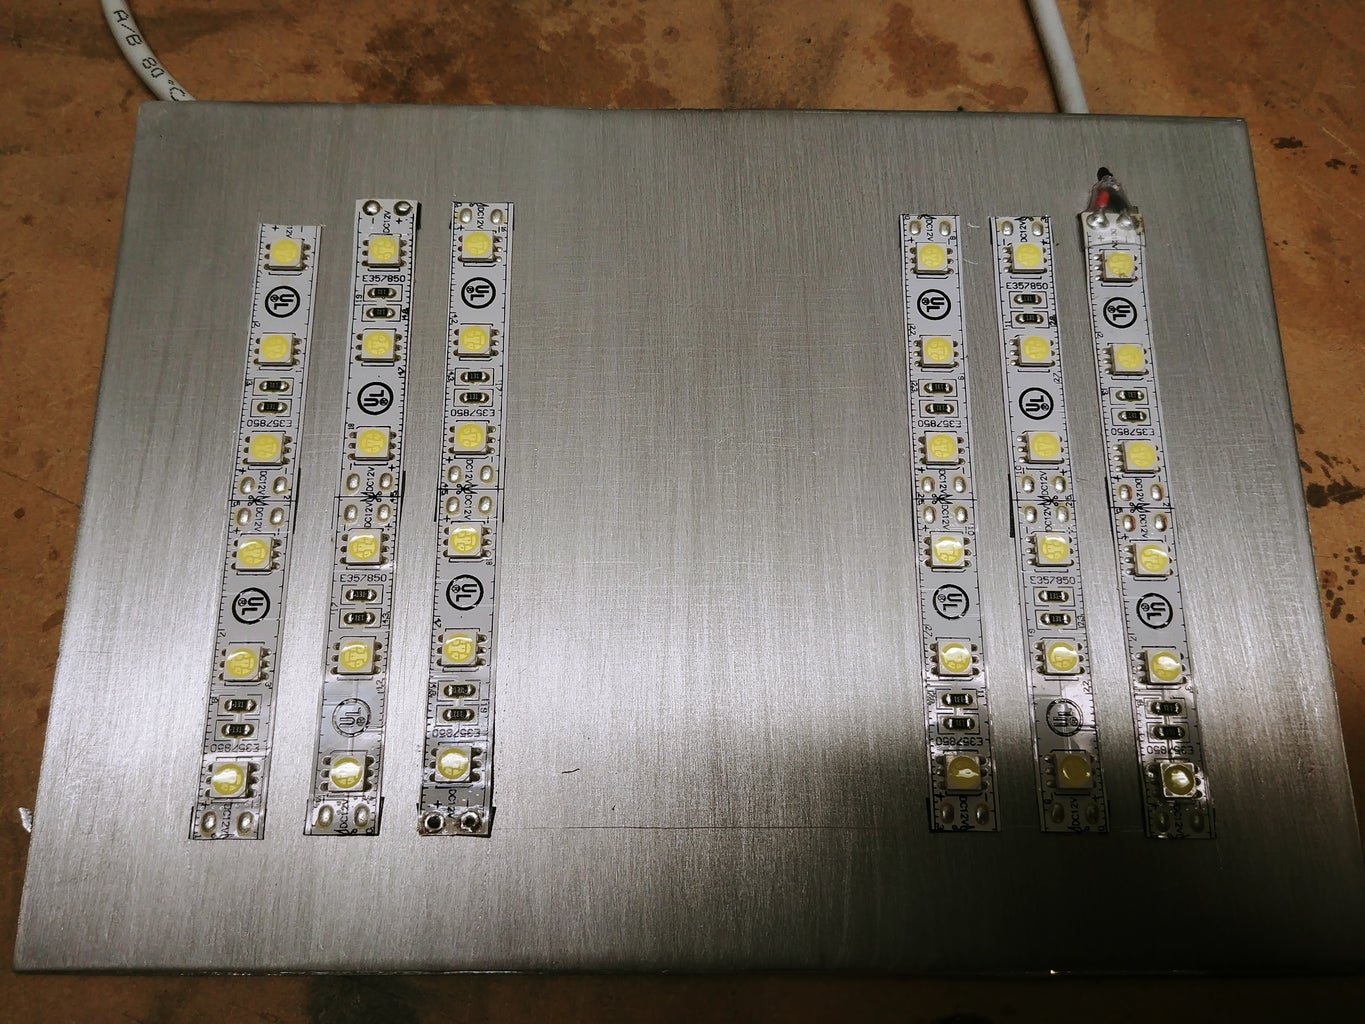 Laying Out the LED's on the Panel